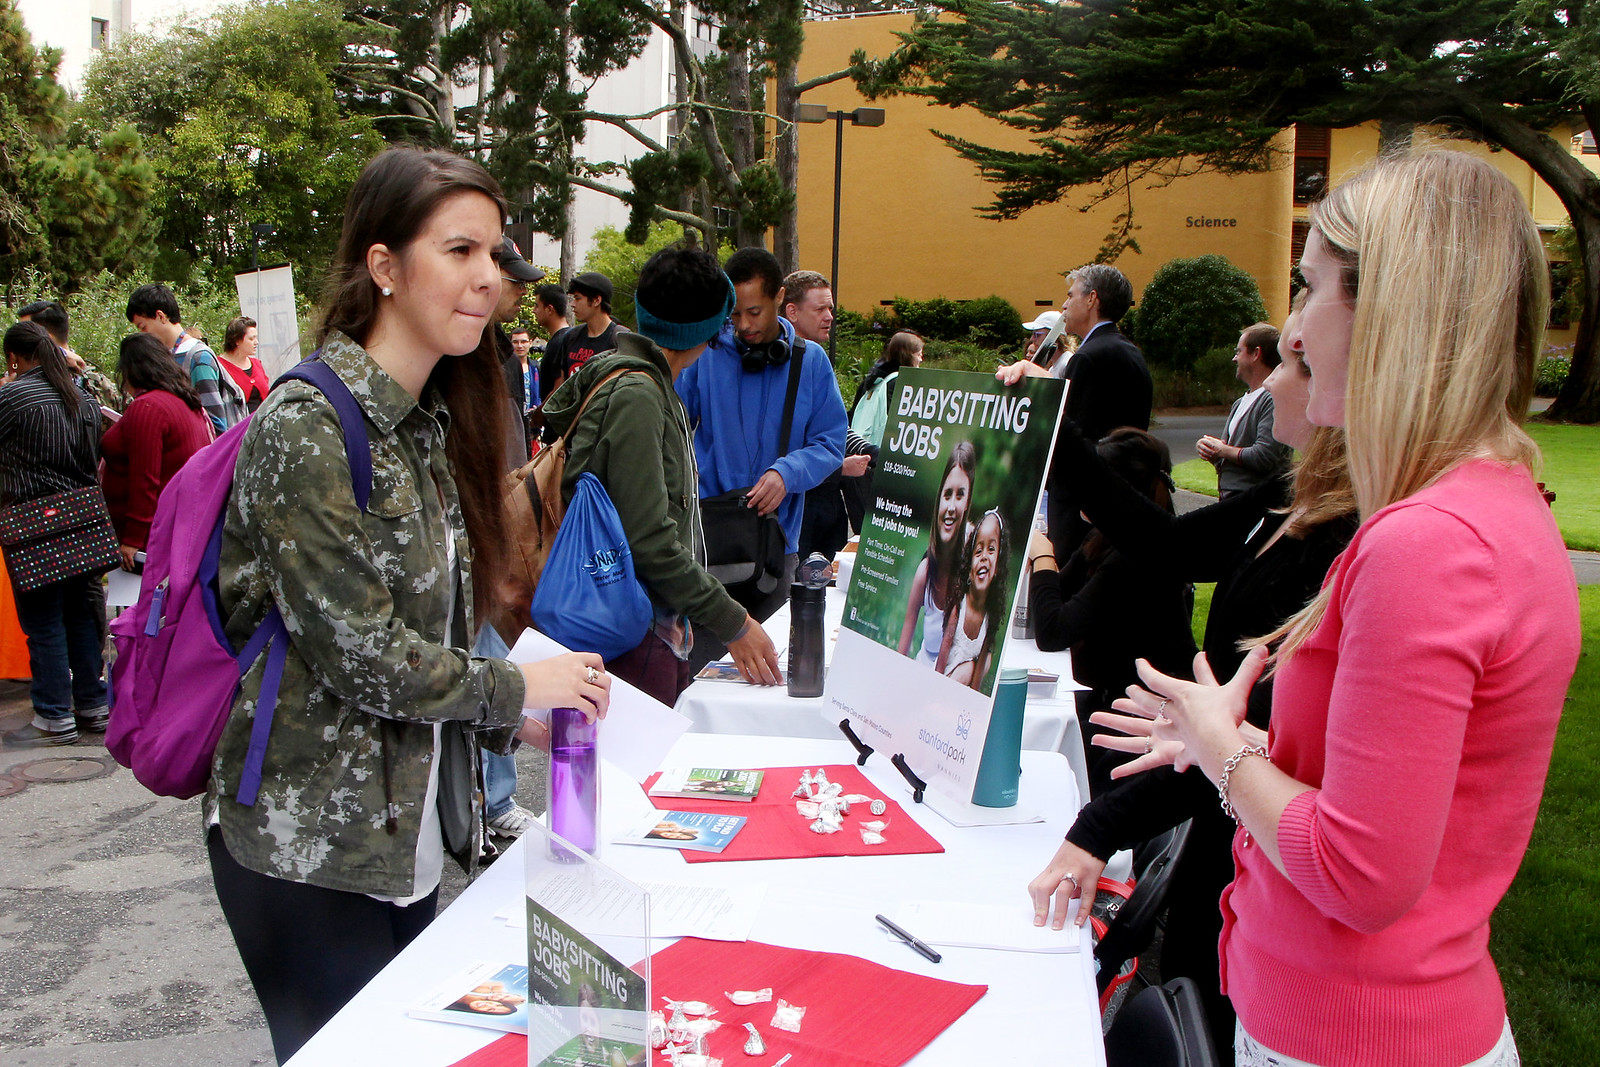 Valeria Hurtado, a Biology major, speaks to Sarah Boll, a representative of Stanford Park Nannies, at a Part-Time Job Fair held in the quad at SF State, on Sept. 12, 2013. The event was put together by the Student Involvement and Career Center as a for students to meet on and off campus employers offering part-time positions. Photo by Gavin McIntyre / Xpress